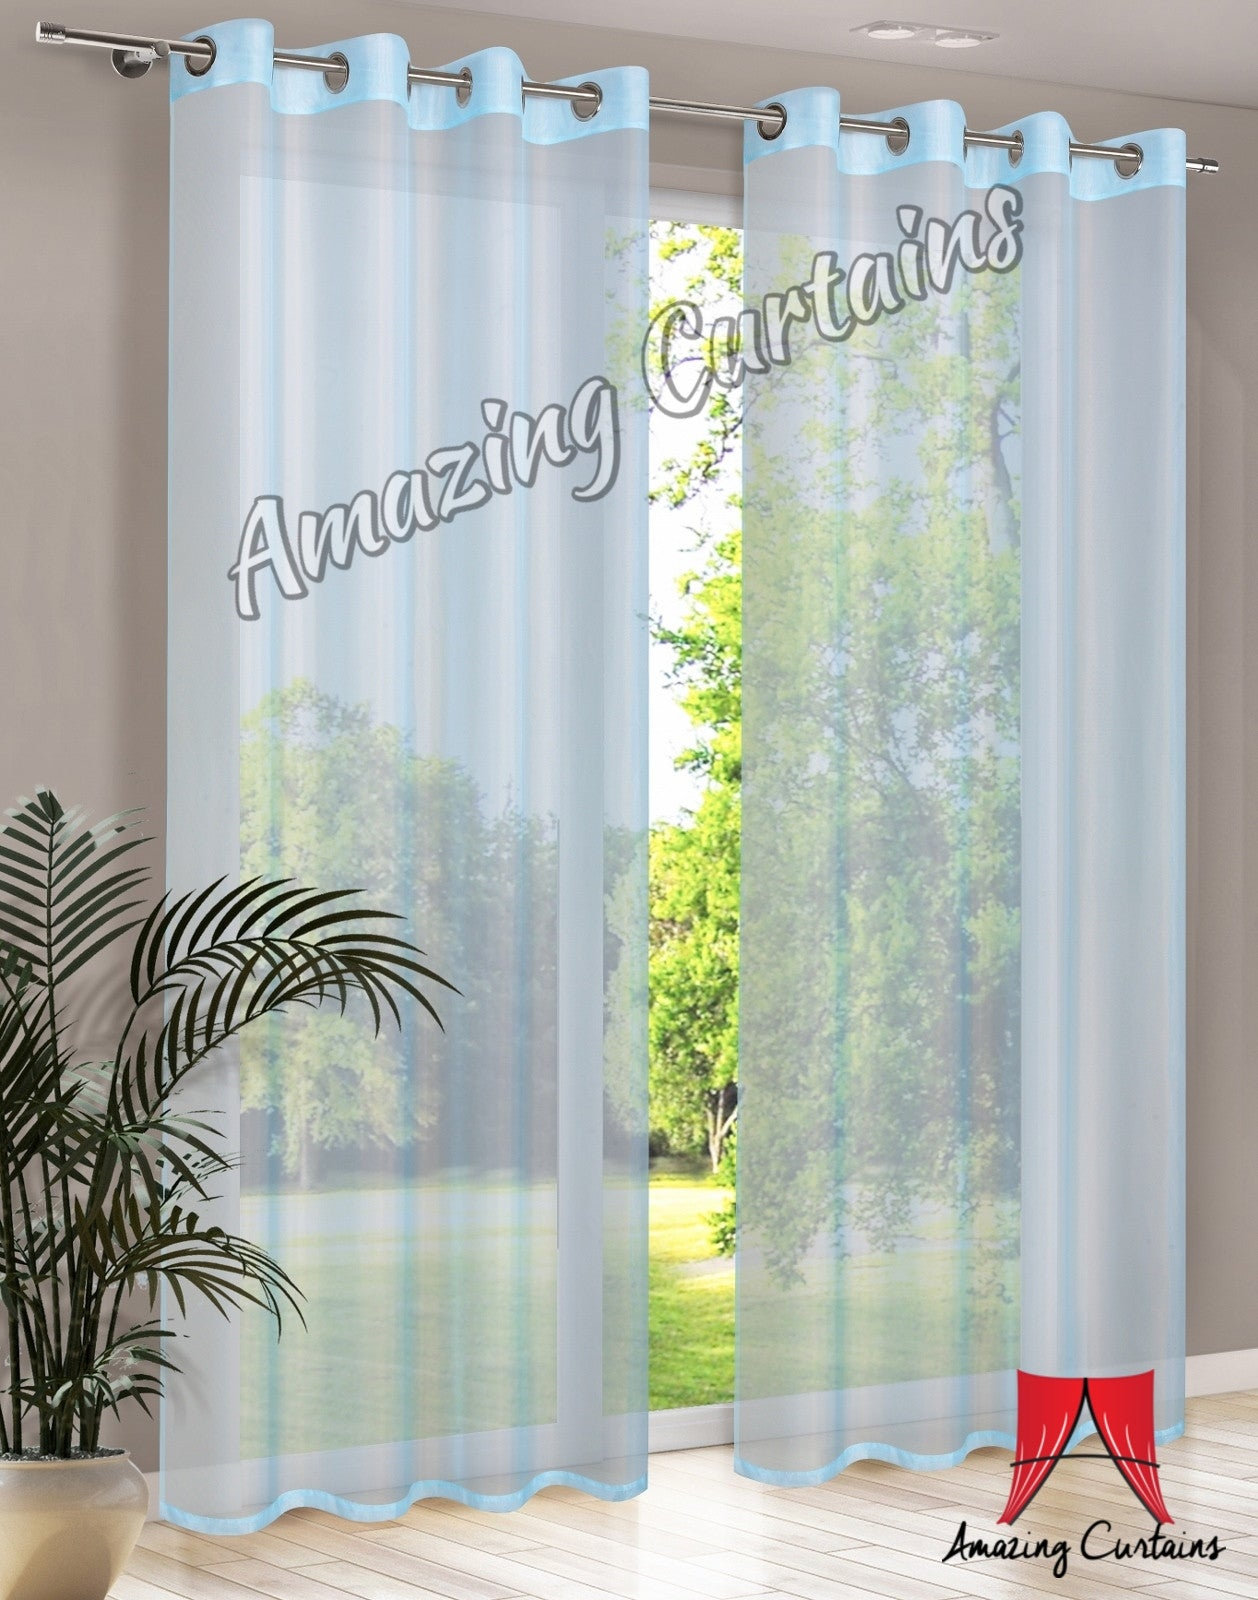 amazon kitchen crushed x curtains tayla panel voile gray home sheer com curtain pocket rod dp no